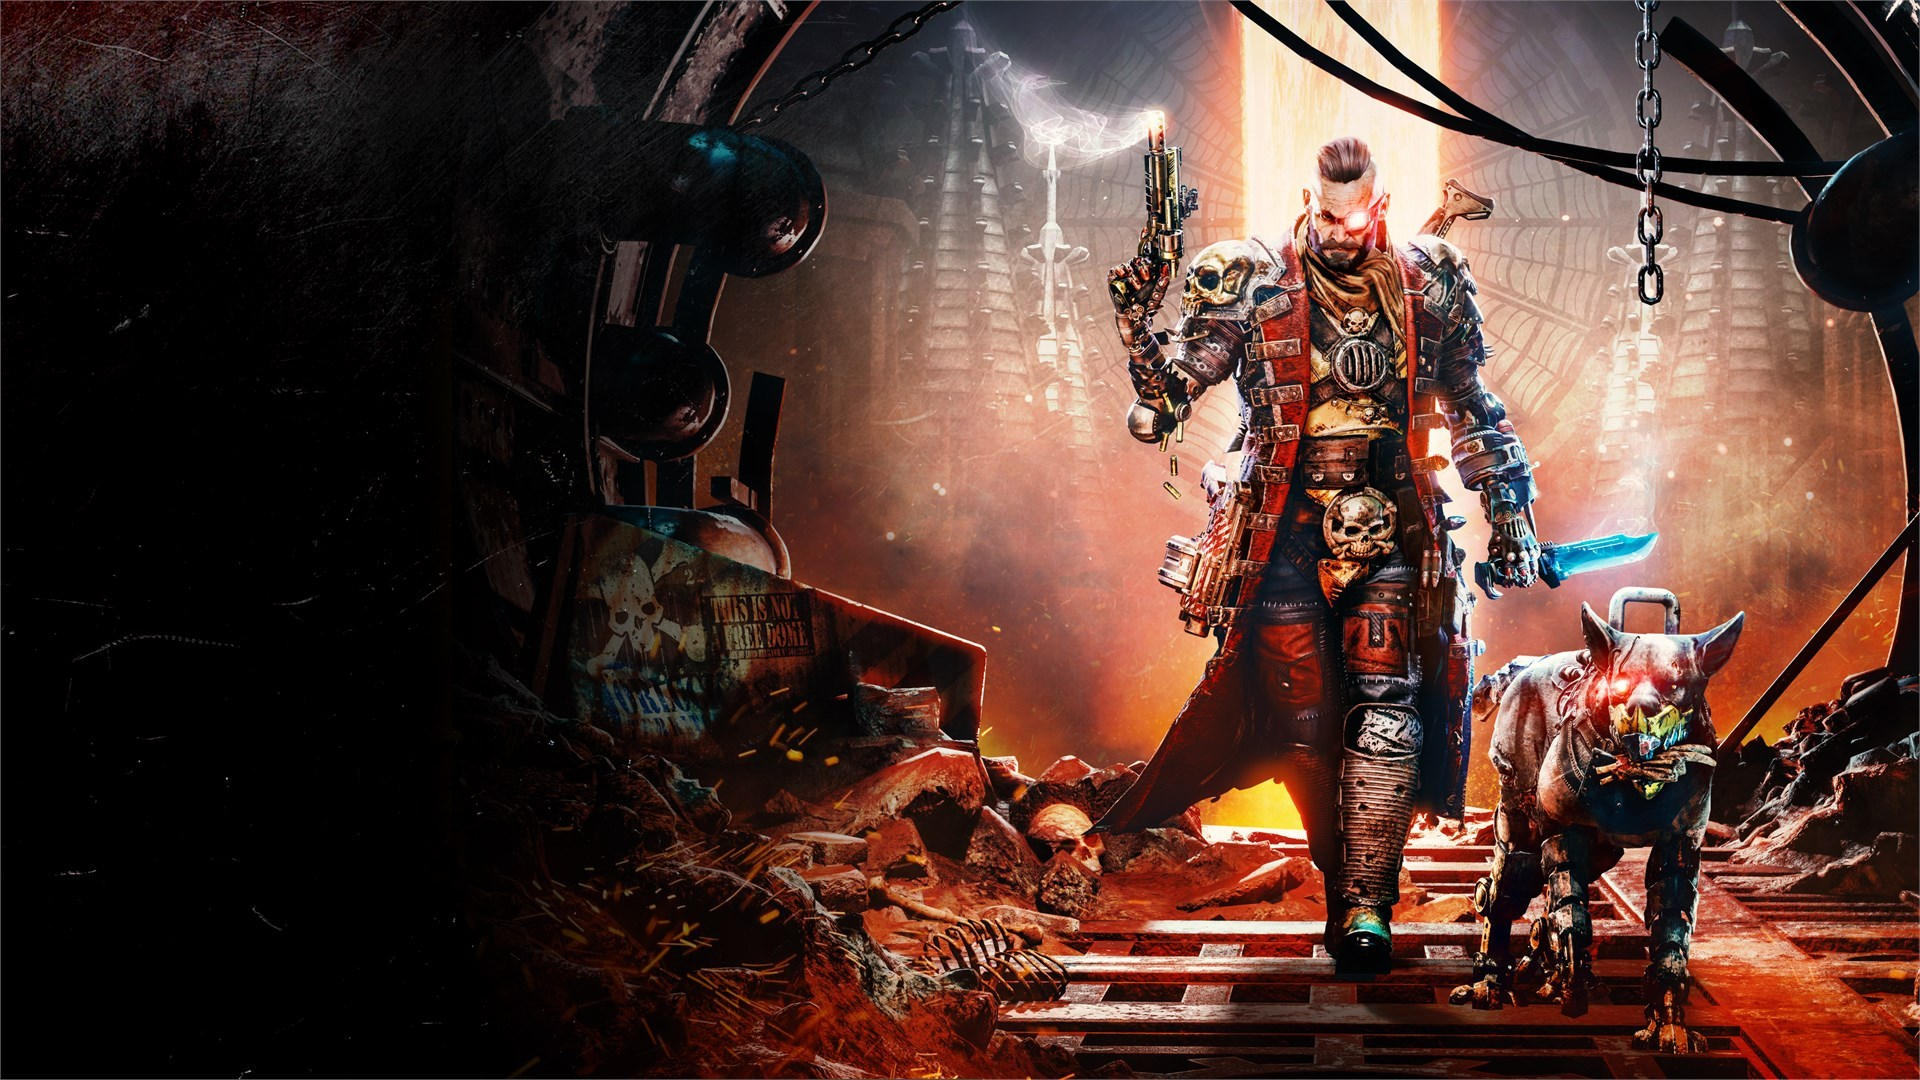 Necromunda: Hired Gun Is Now Available For Xbox One And Xbox Series X|S 1